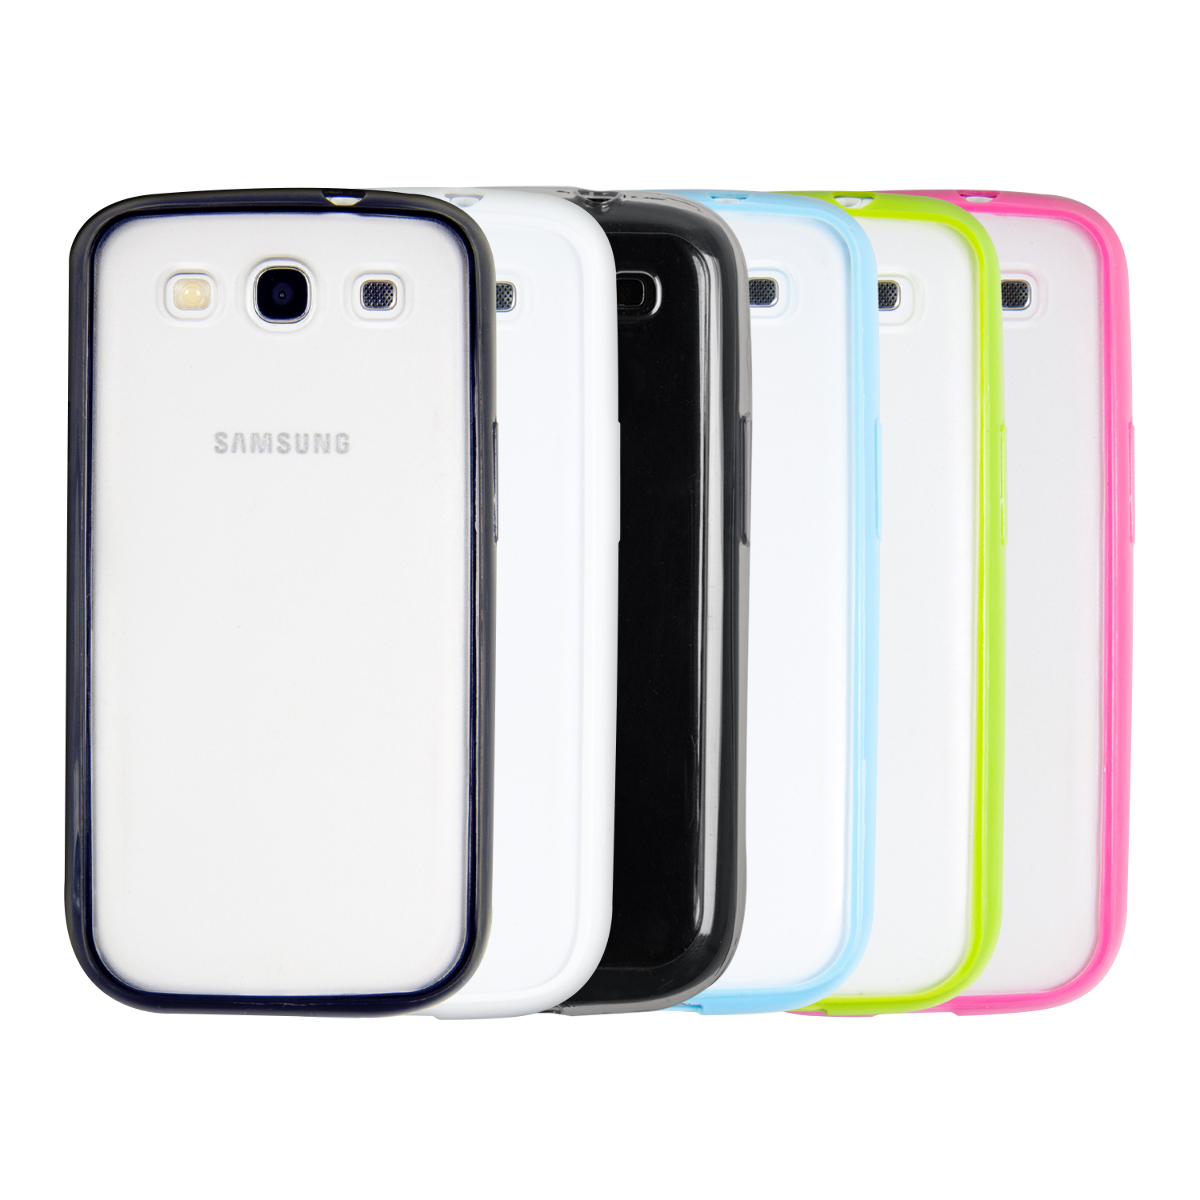 Tpu samsung galaxy s3 s3 neo - Kwmobile Simply Stylish Tpu Silicone Case For The Samsung Galaxy S3 S3 Neo With Transparent Back And Edges In Desired Colour